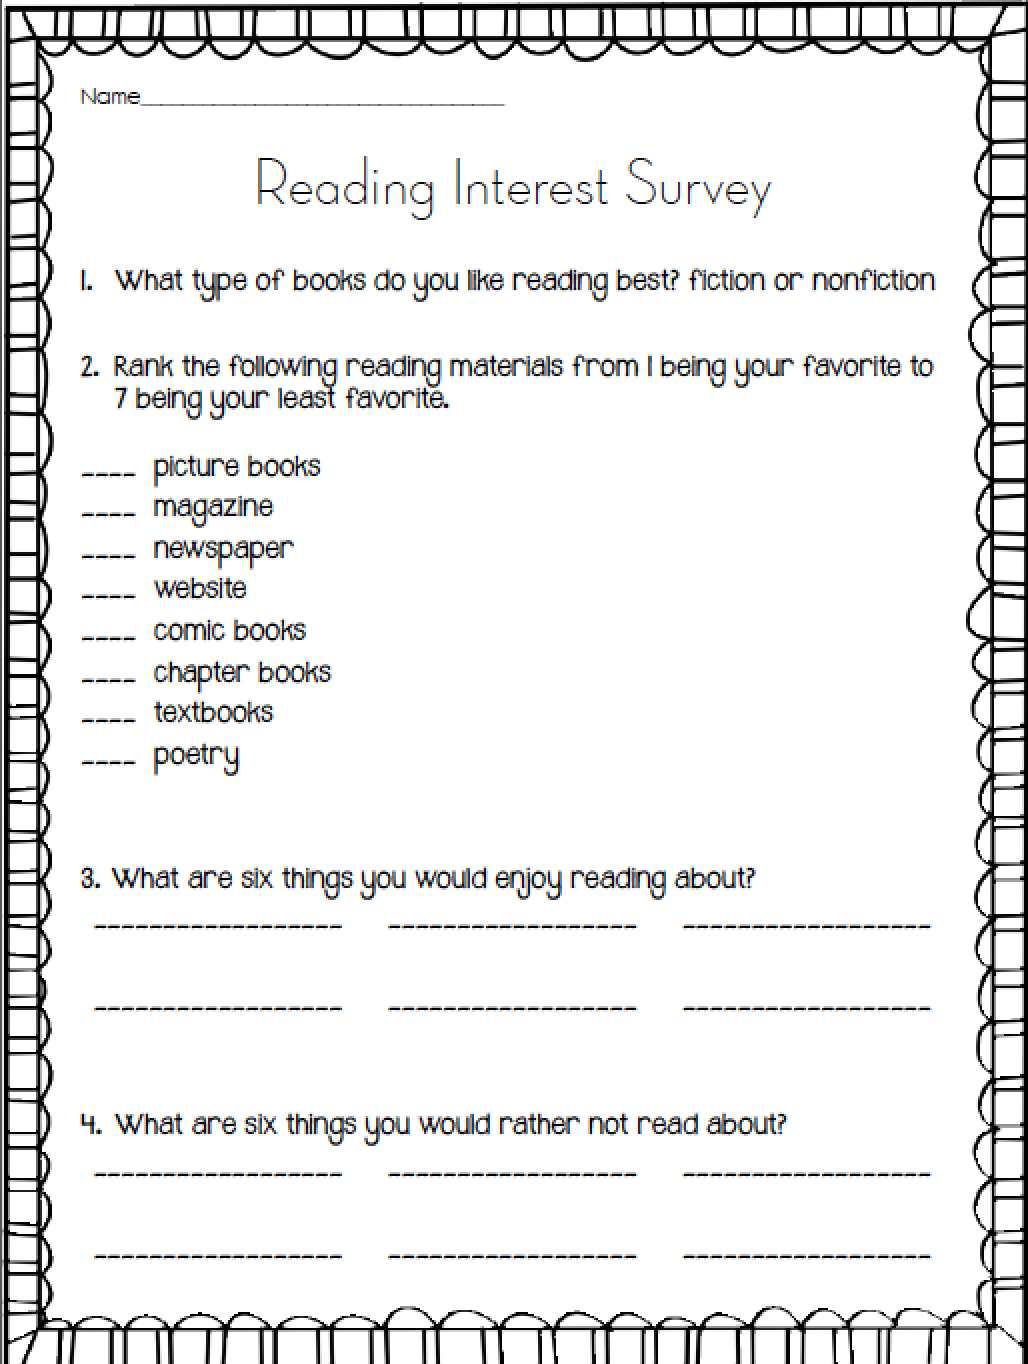 Educationjourney Guided Reading Guided Reading Reading Survey Reading Interest Survey [ 1364 x 1028 Pixel ]